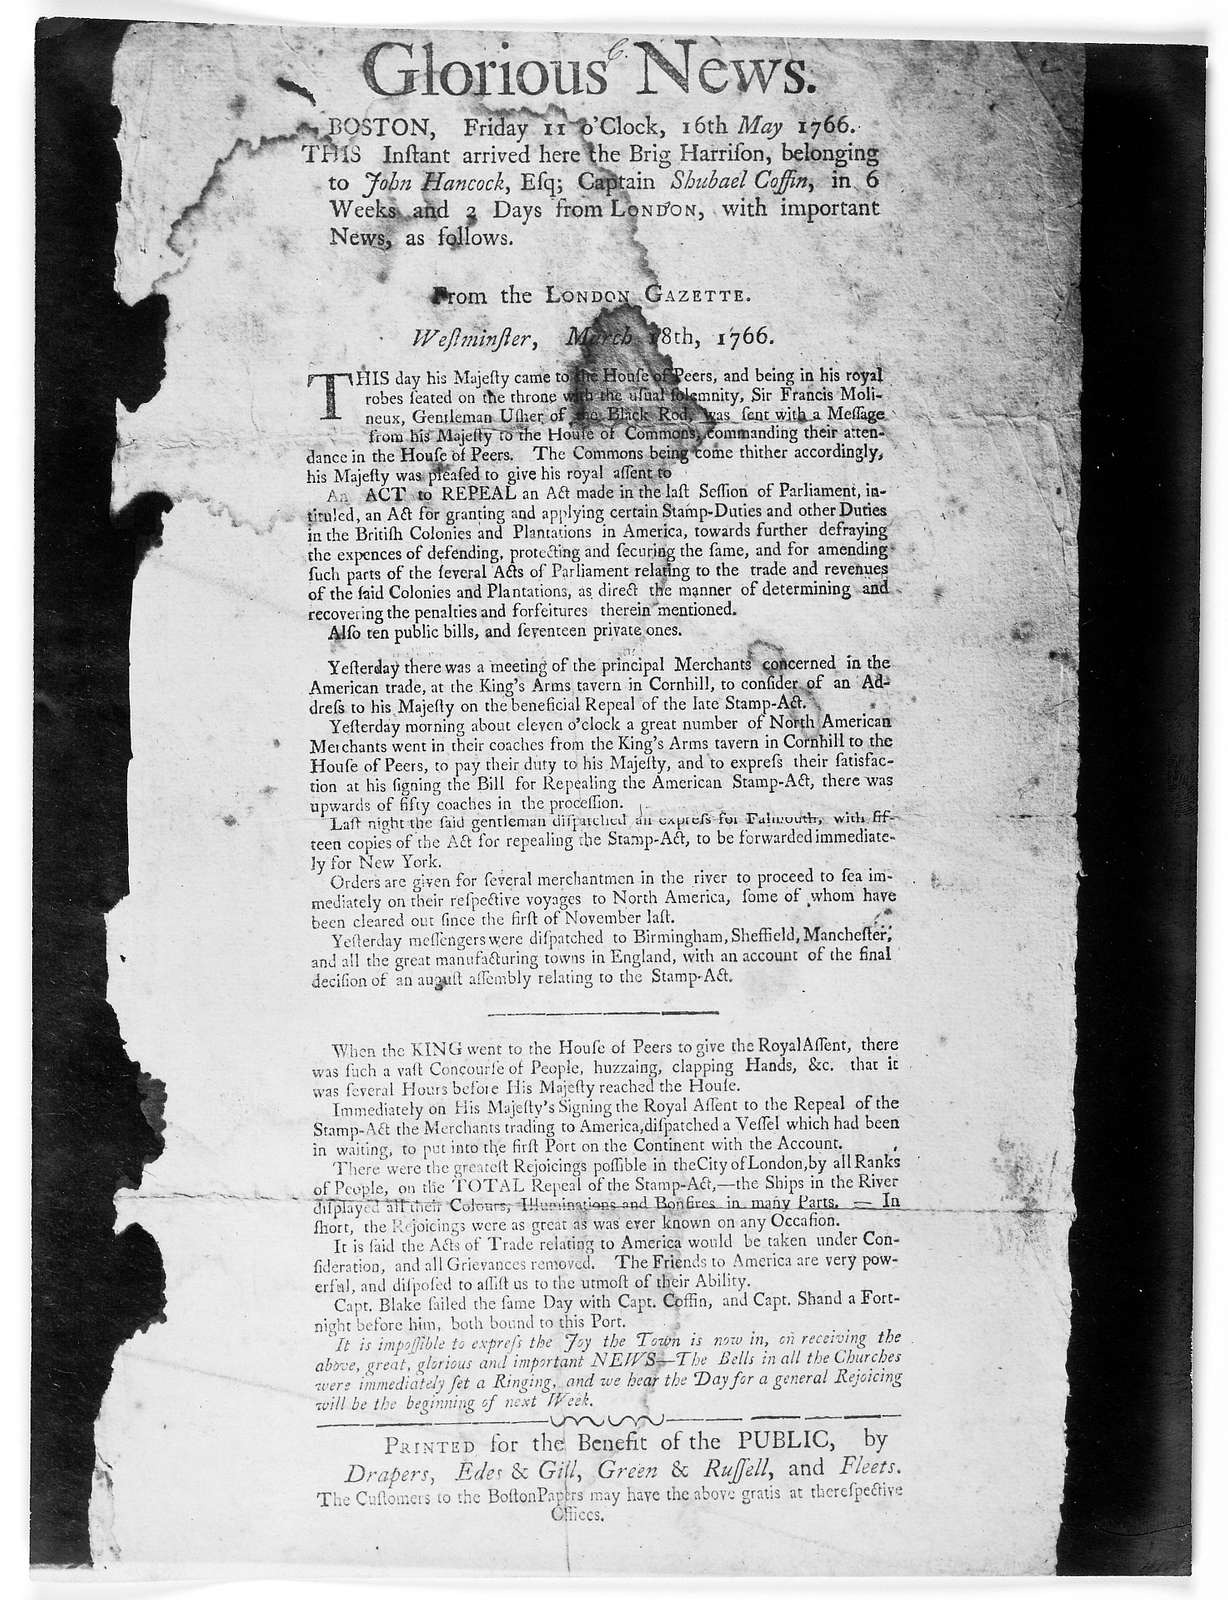 Glorious news. Boston. Friday 11 o'clock, 16th May 1766 This instant arrived here the Brig. Harrison, belonging to John Hancock, Esq; Captain Shubael Coffin, in 6 weeks and 2 days from London, with important news, as follows: From the London Gaz